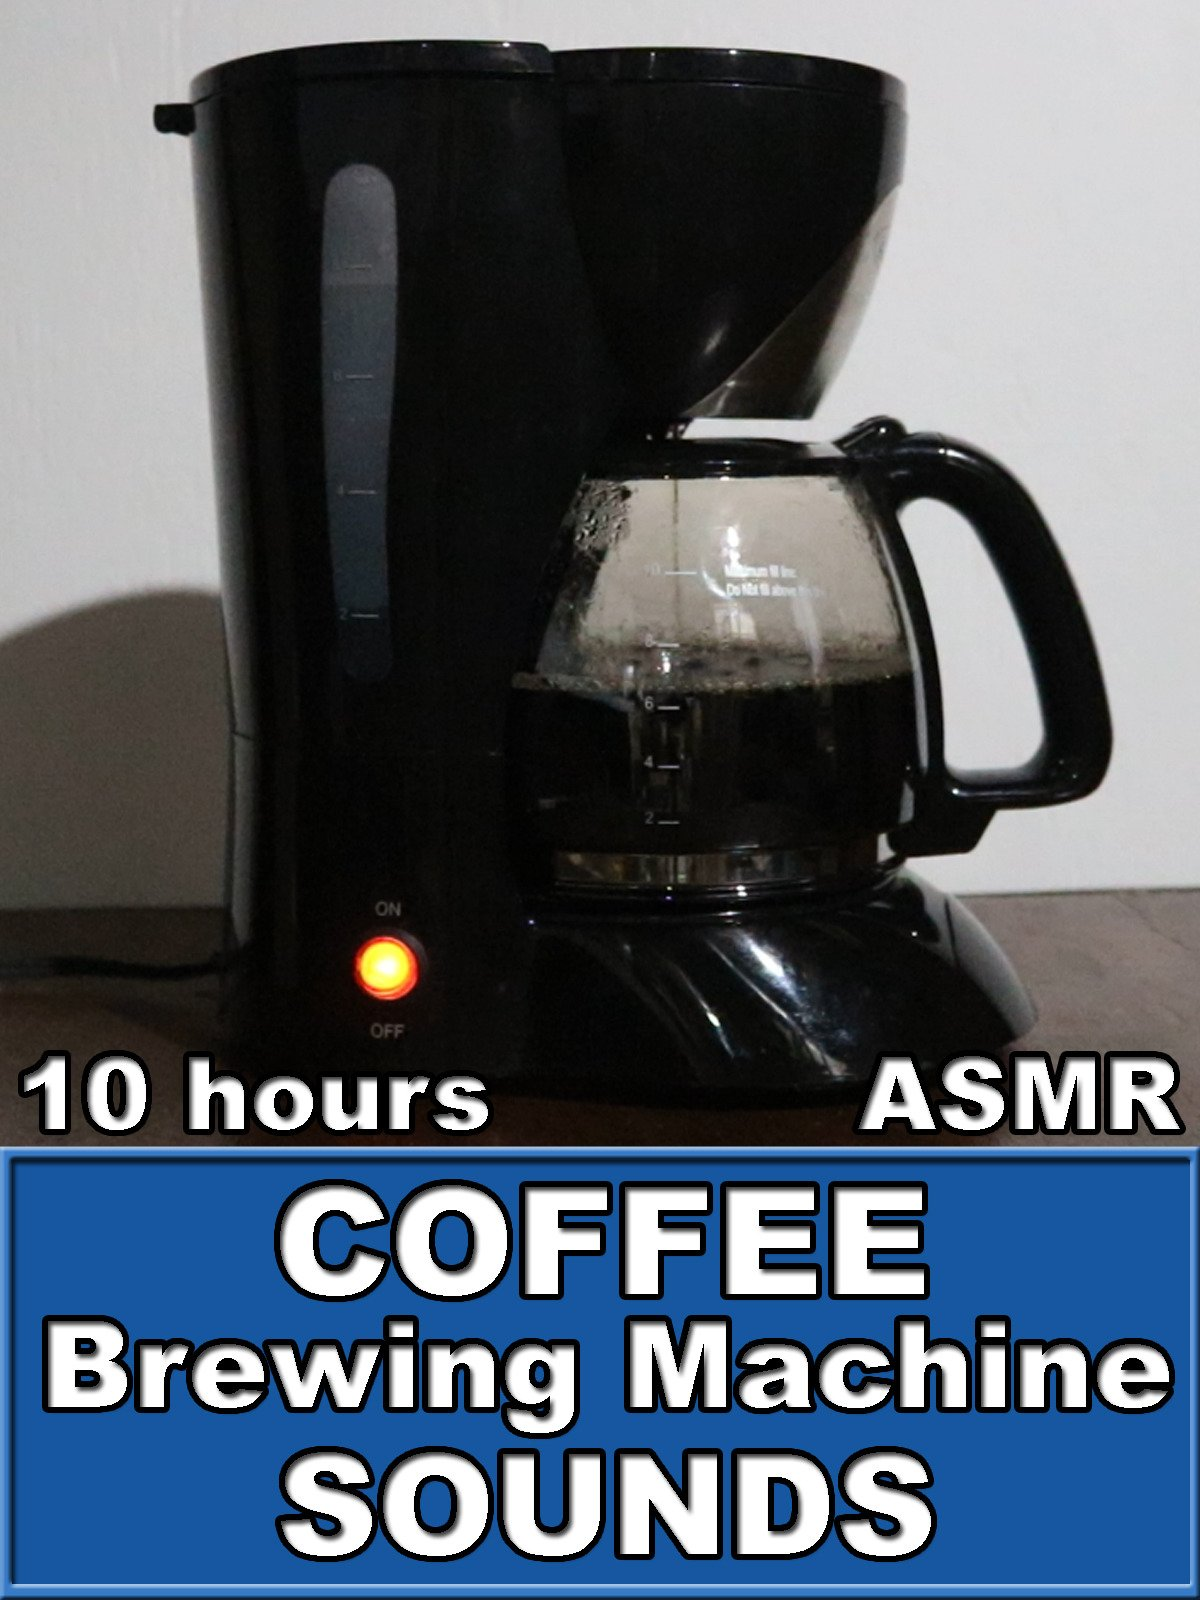 Coffee Brewing Machine Sounds 10 Hours ASMR